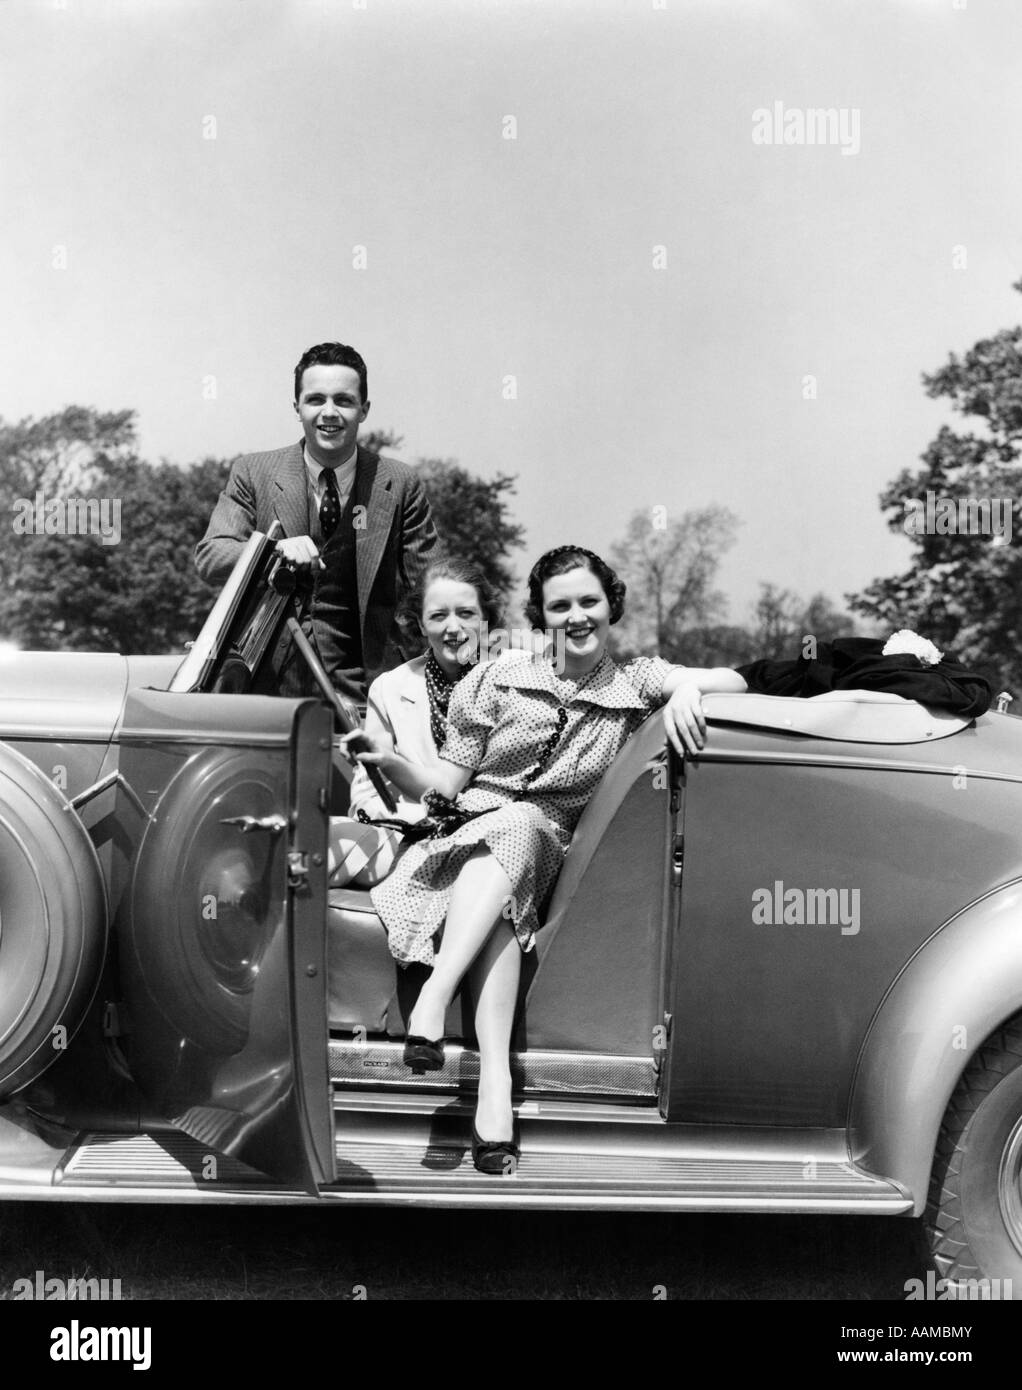 1930s RETRO WOMEN MAN CAR SMILE CONVERTIBLE SUIT Stock Photo ...